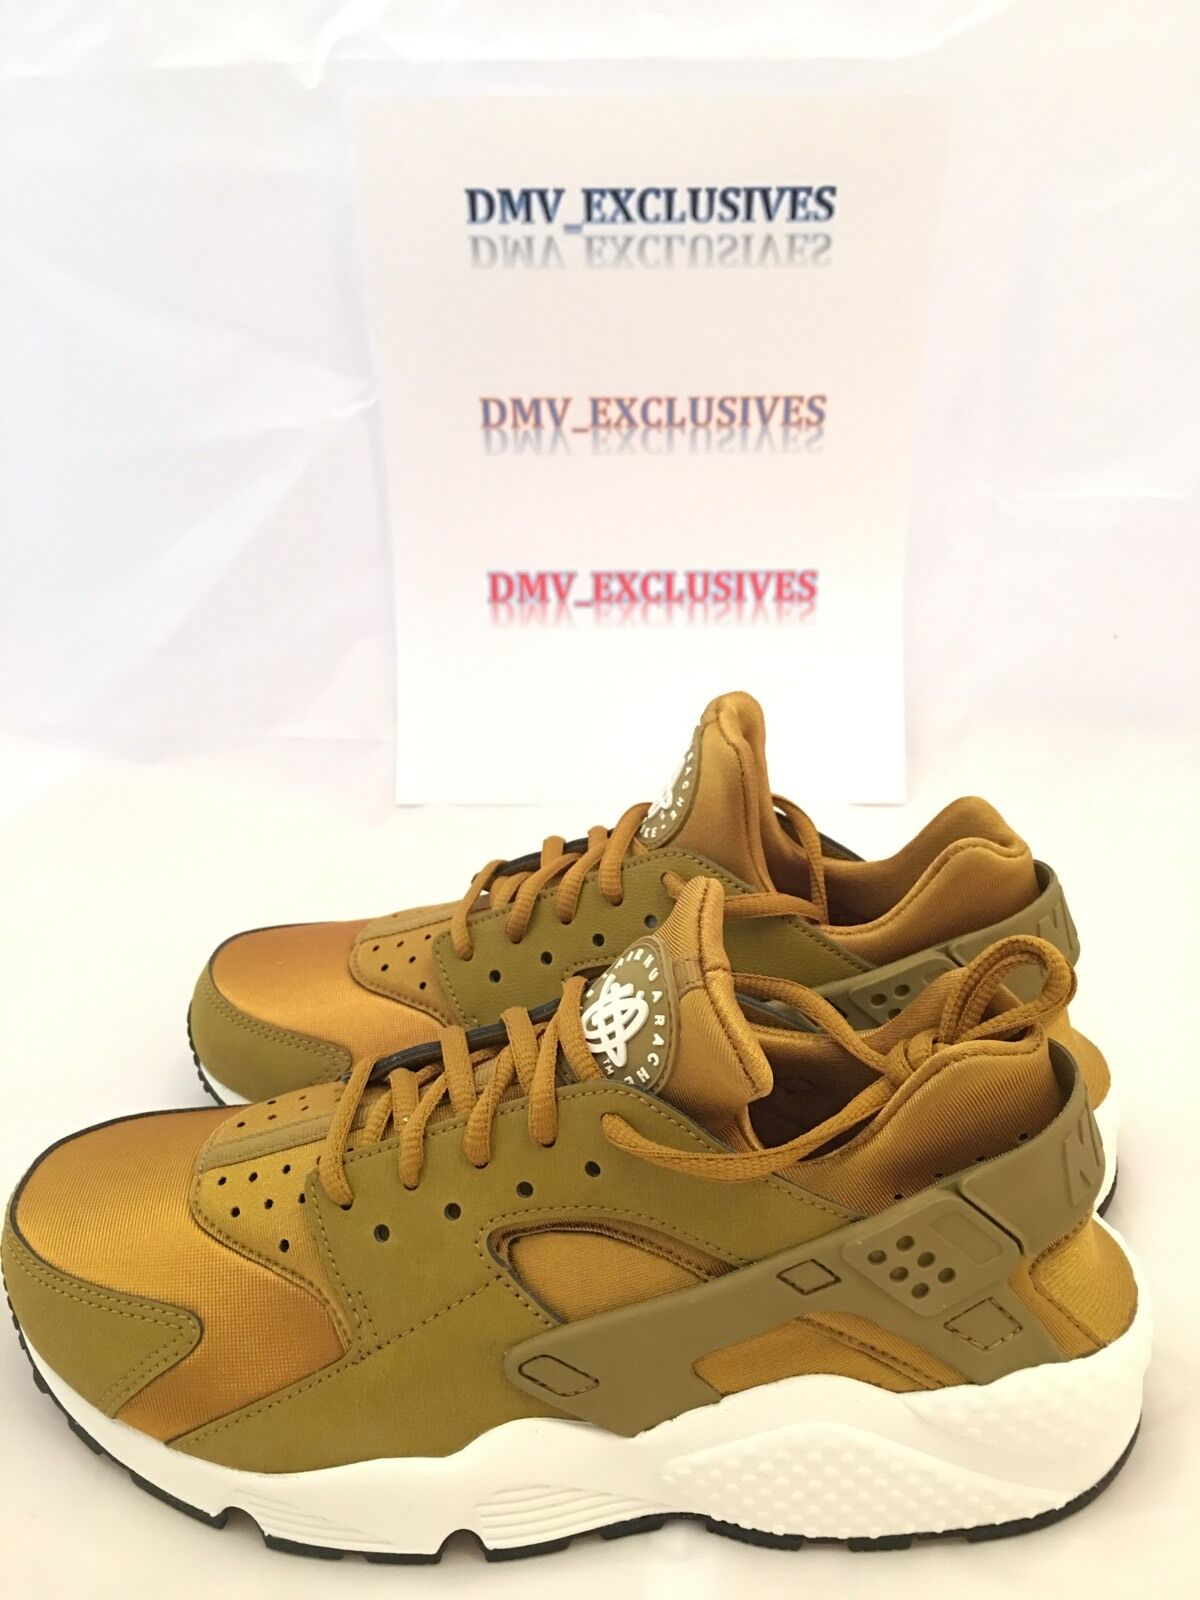 Nike Womens Air Huarache Run Bronzine Gold 634835-700